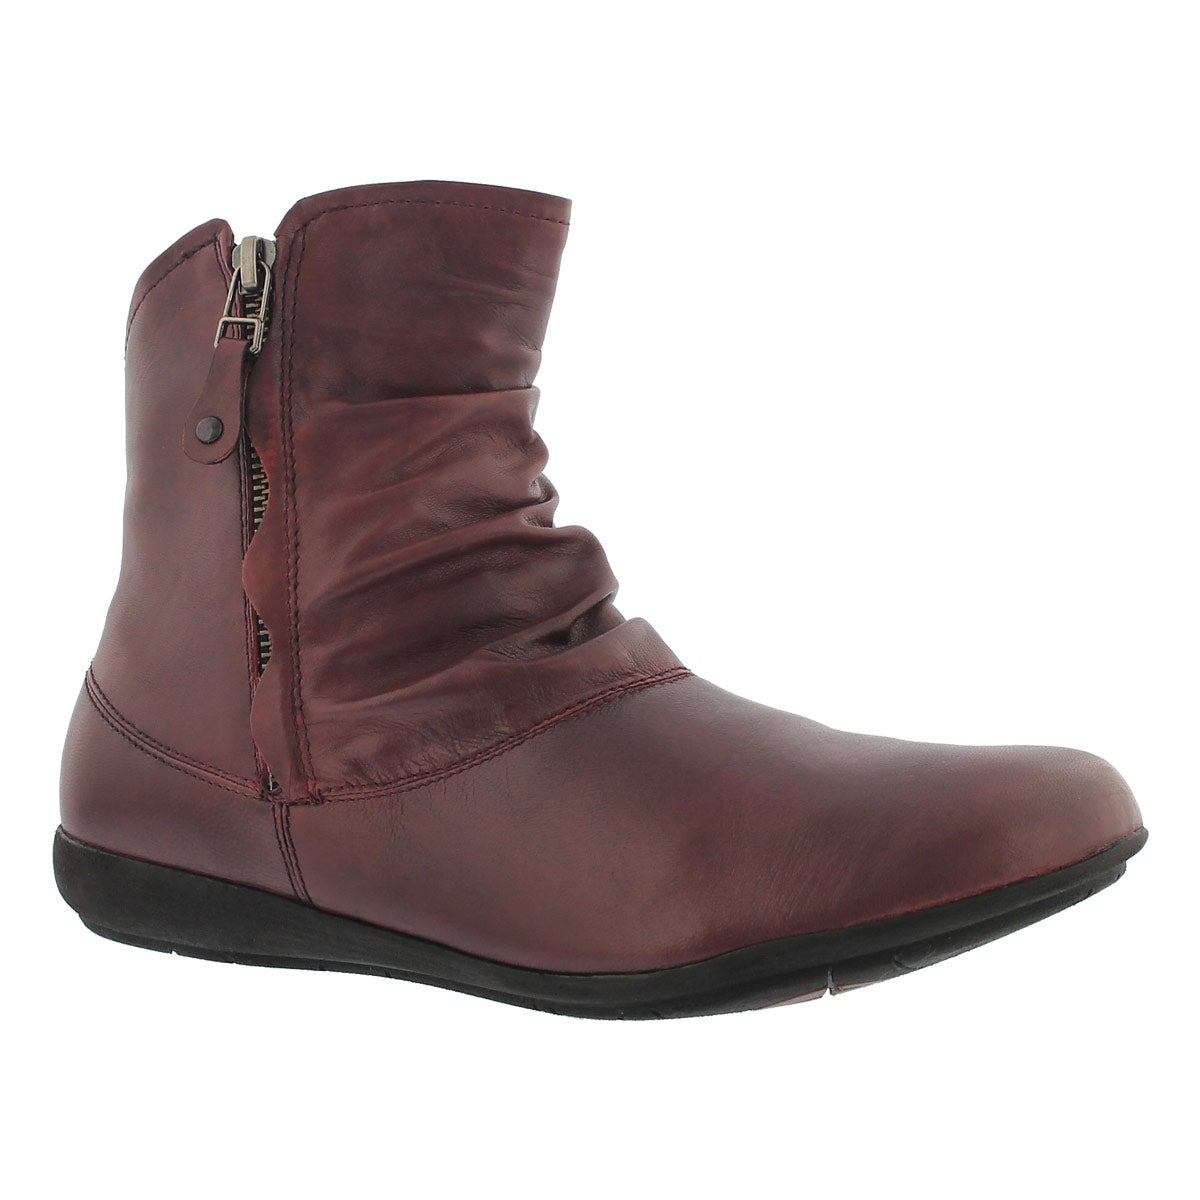 Women's FAYE 05 sangria leather casual booties